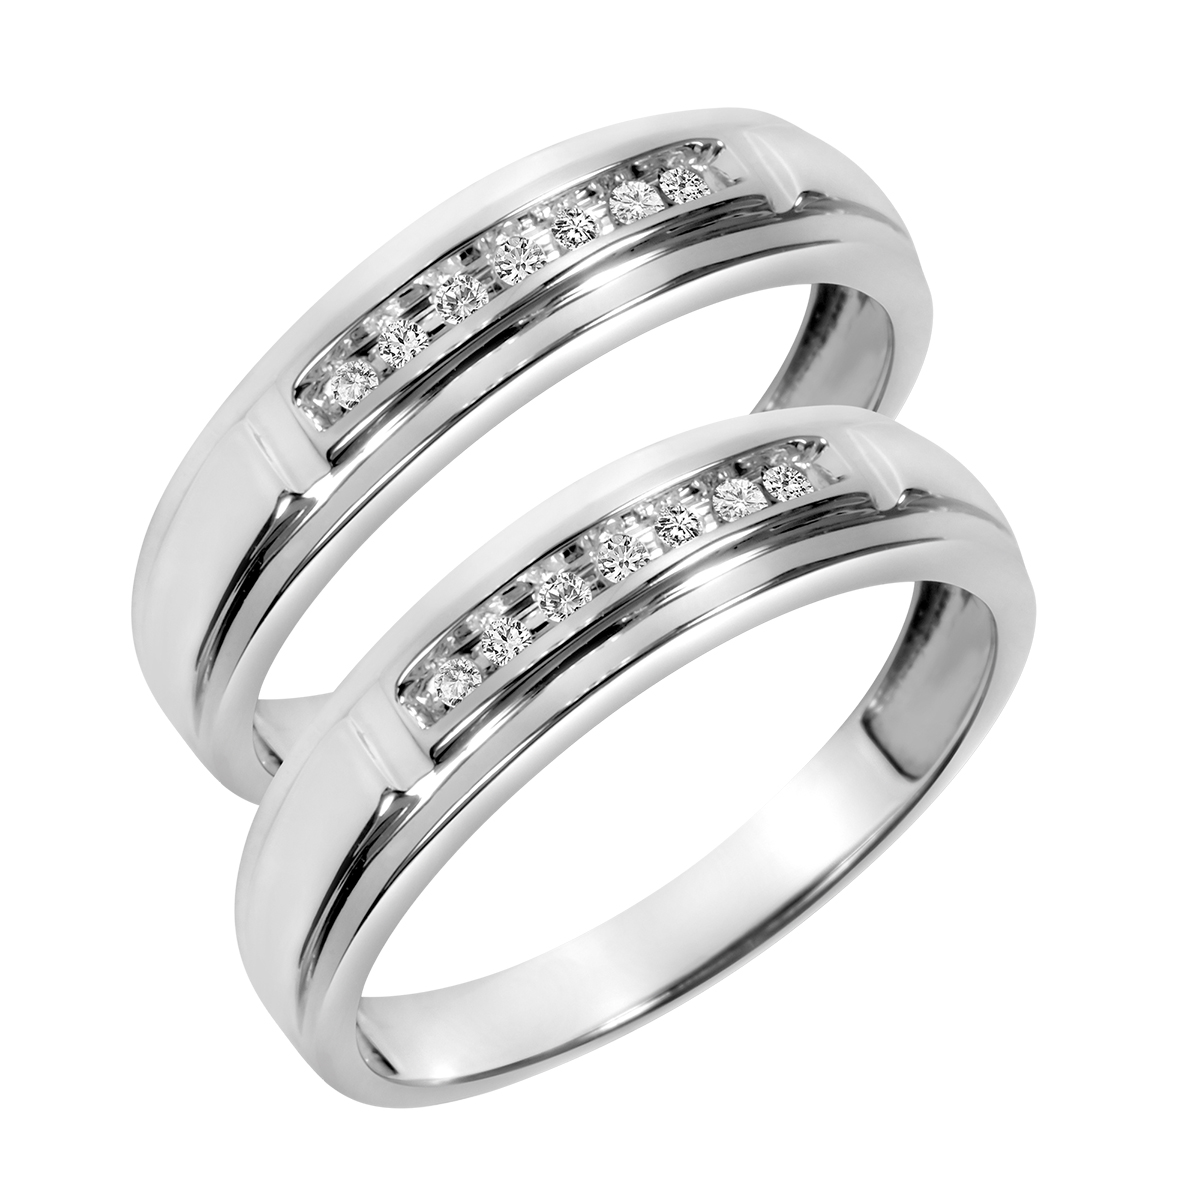 14 ct t w round cut ladies same sex wedding band set 14k white gold size 8 gay wedding bands 1 7 Carat T W Round Cut Mens Same Sex Wedding Band Set 14K White Gold